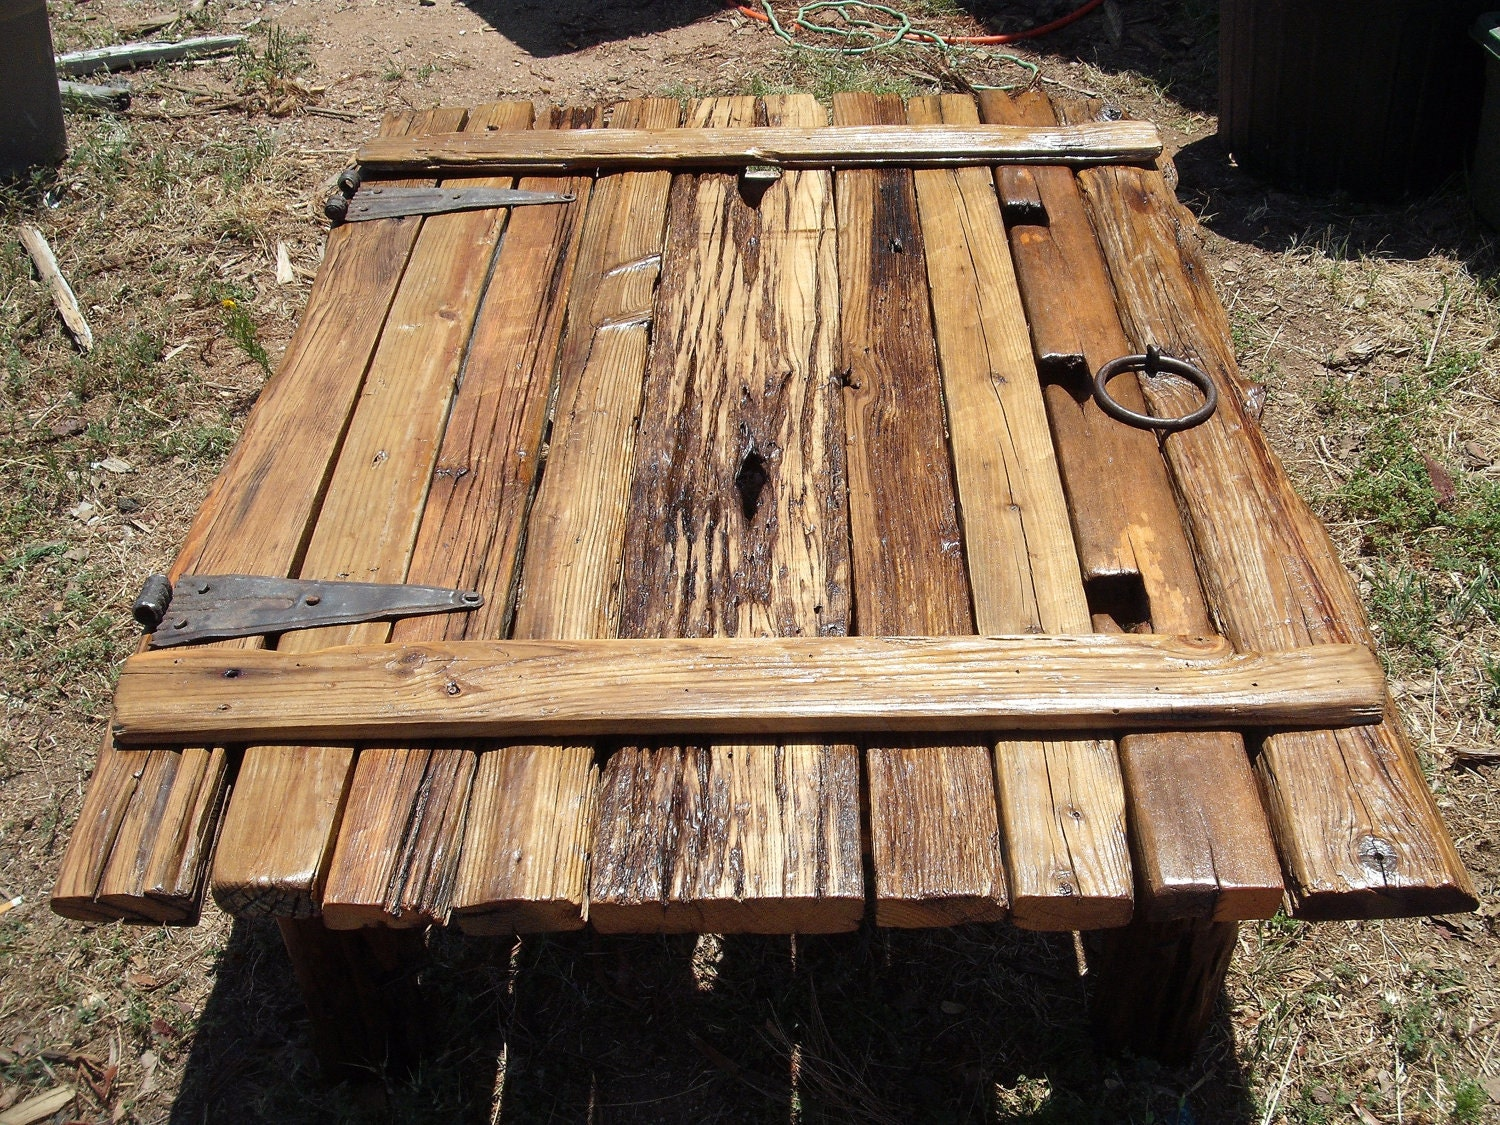 unavailable listing on etsy With barn door tables for sale